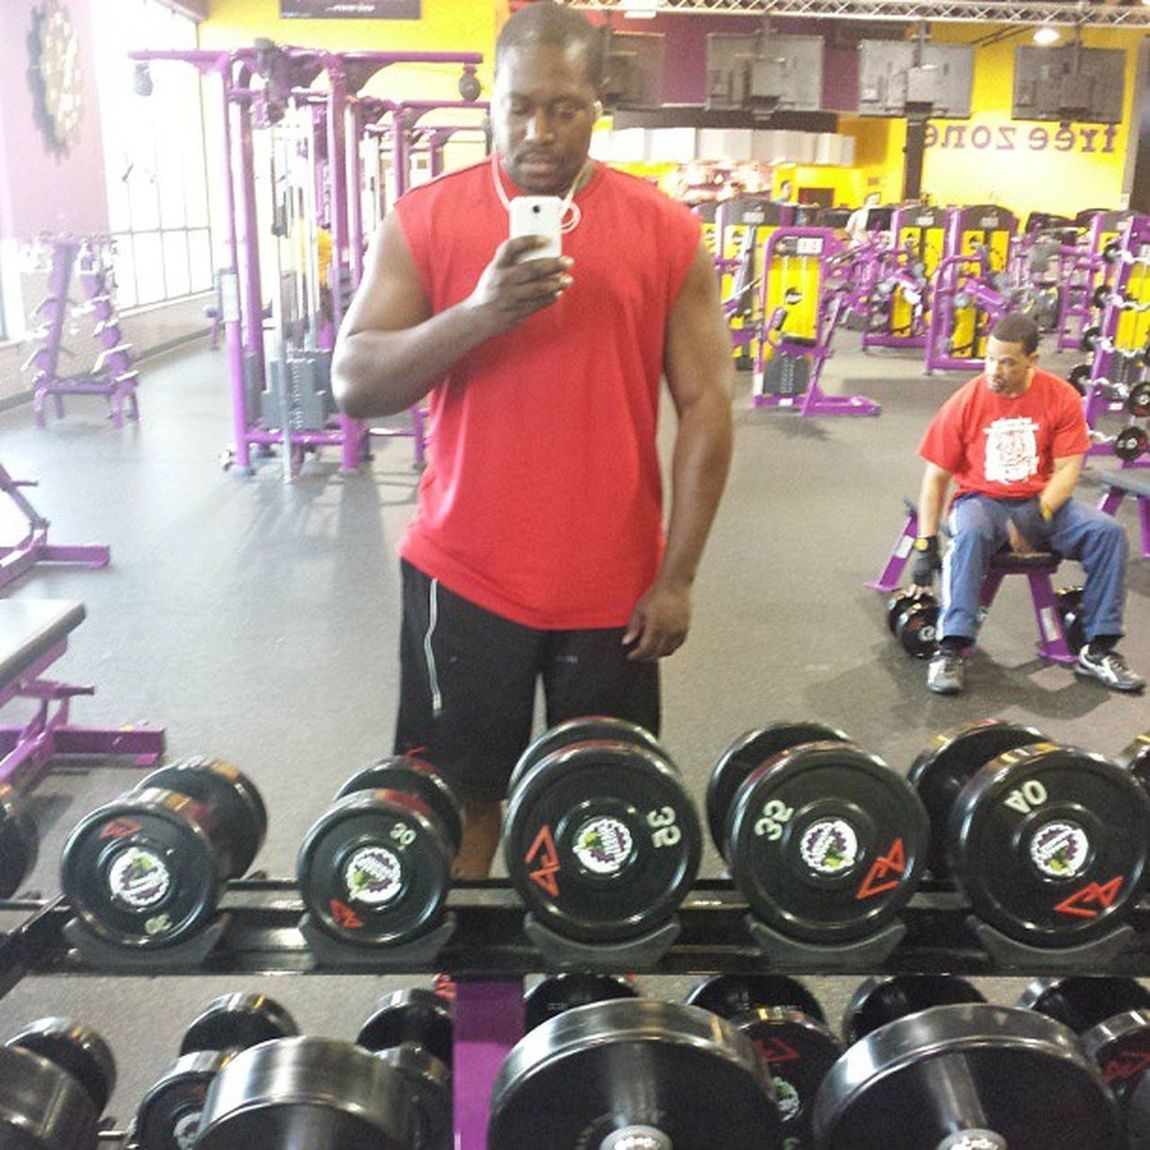 Workout Exercise Physicalfitness Diet weightlifting planetfitness